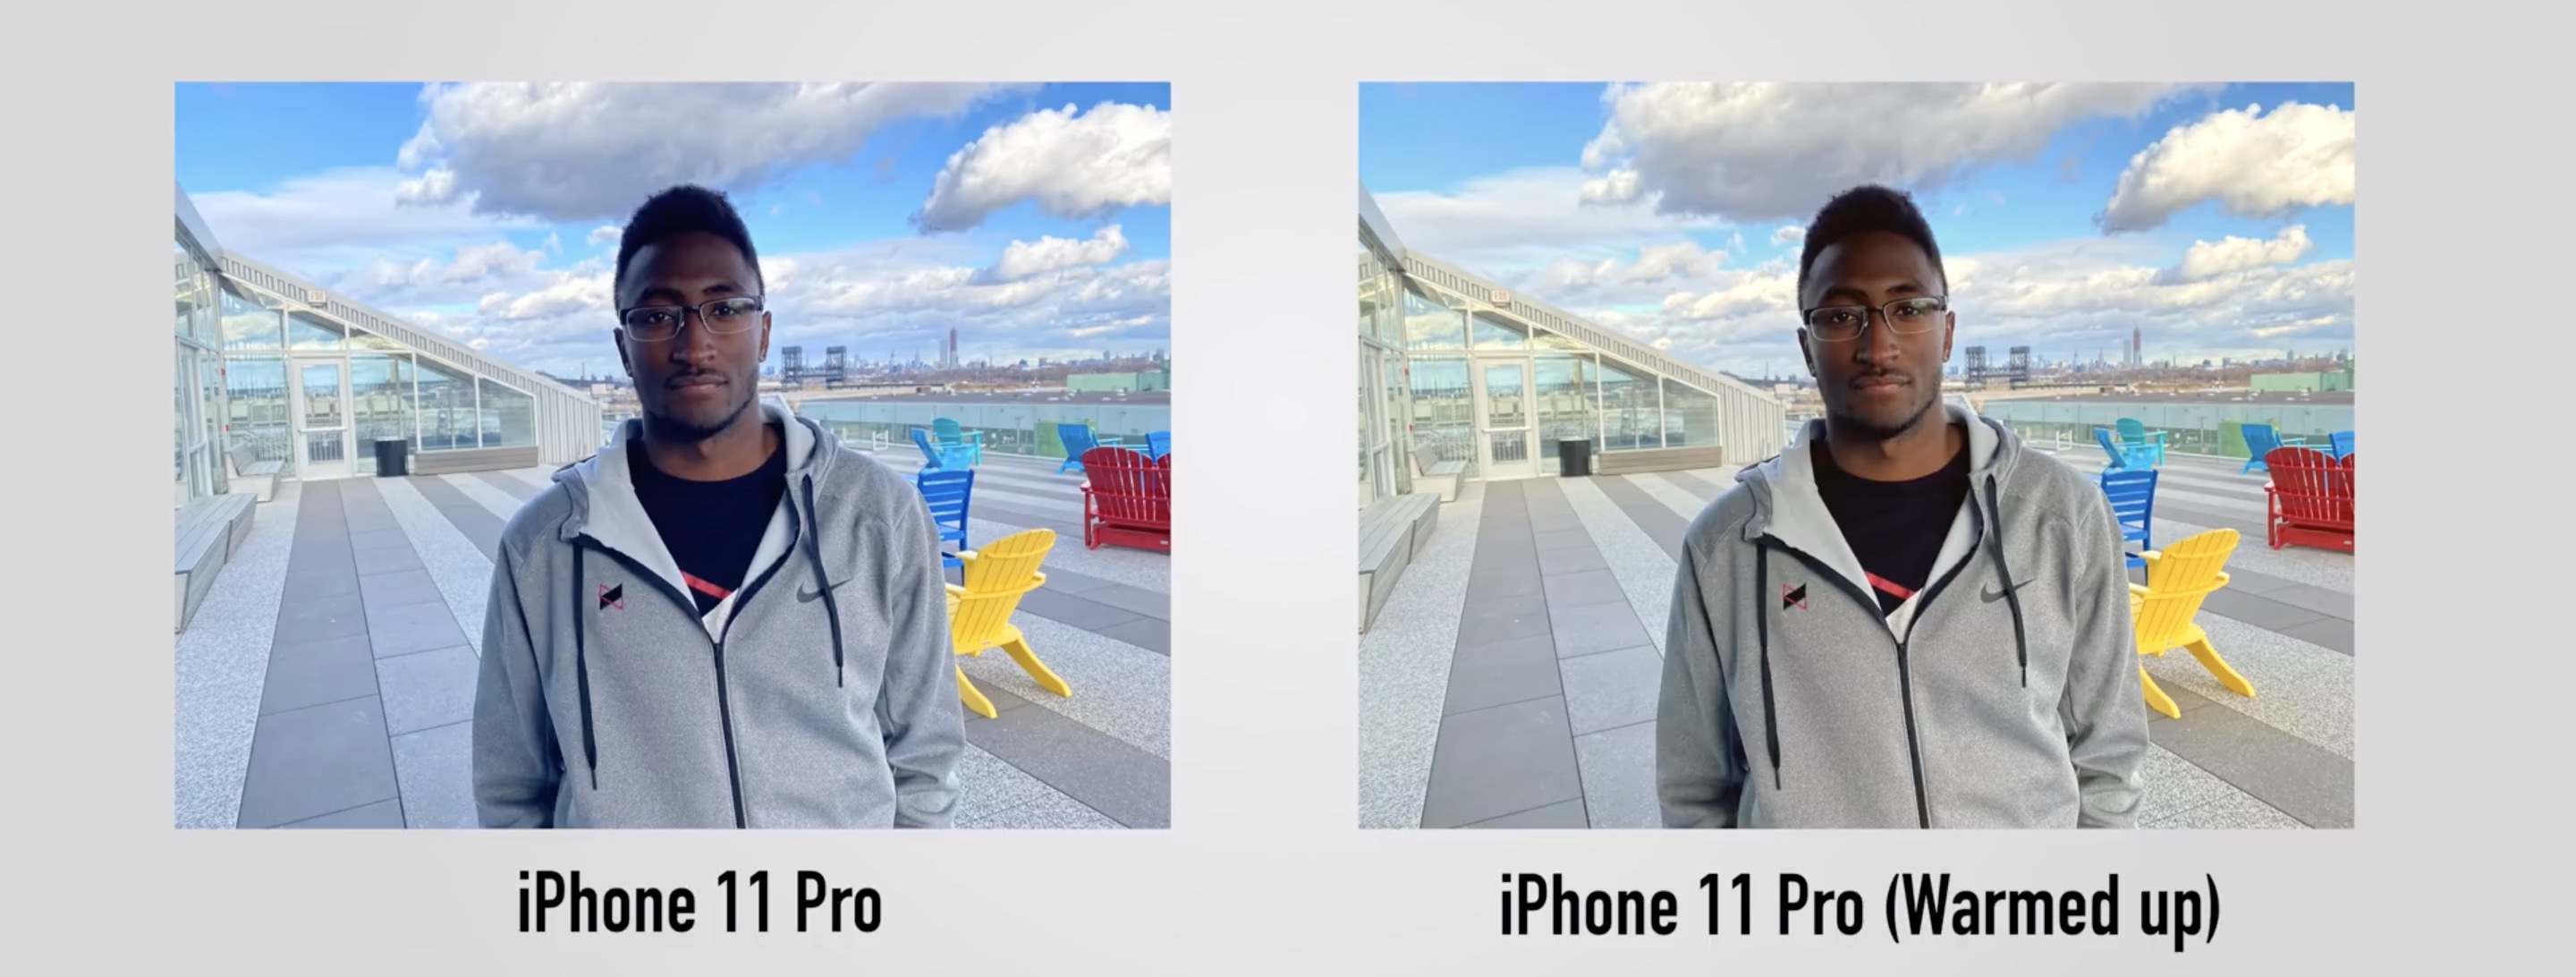 MKBHD iPhone 11 Pro